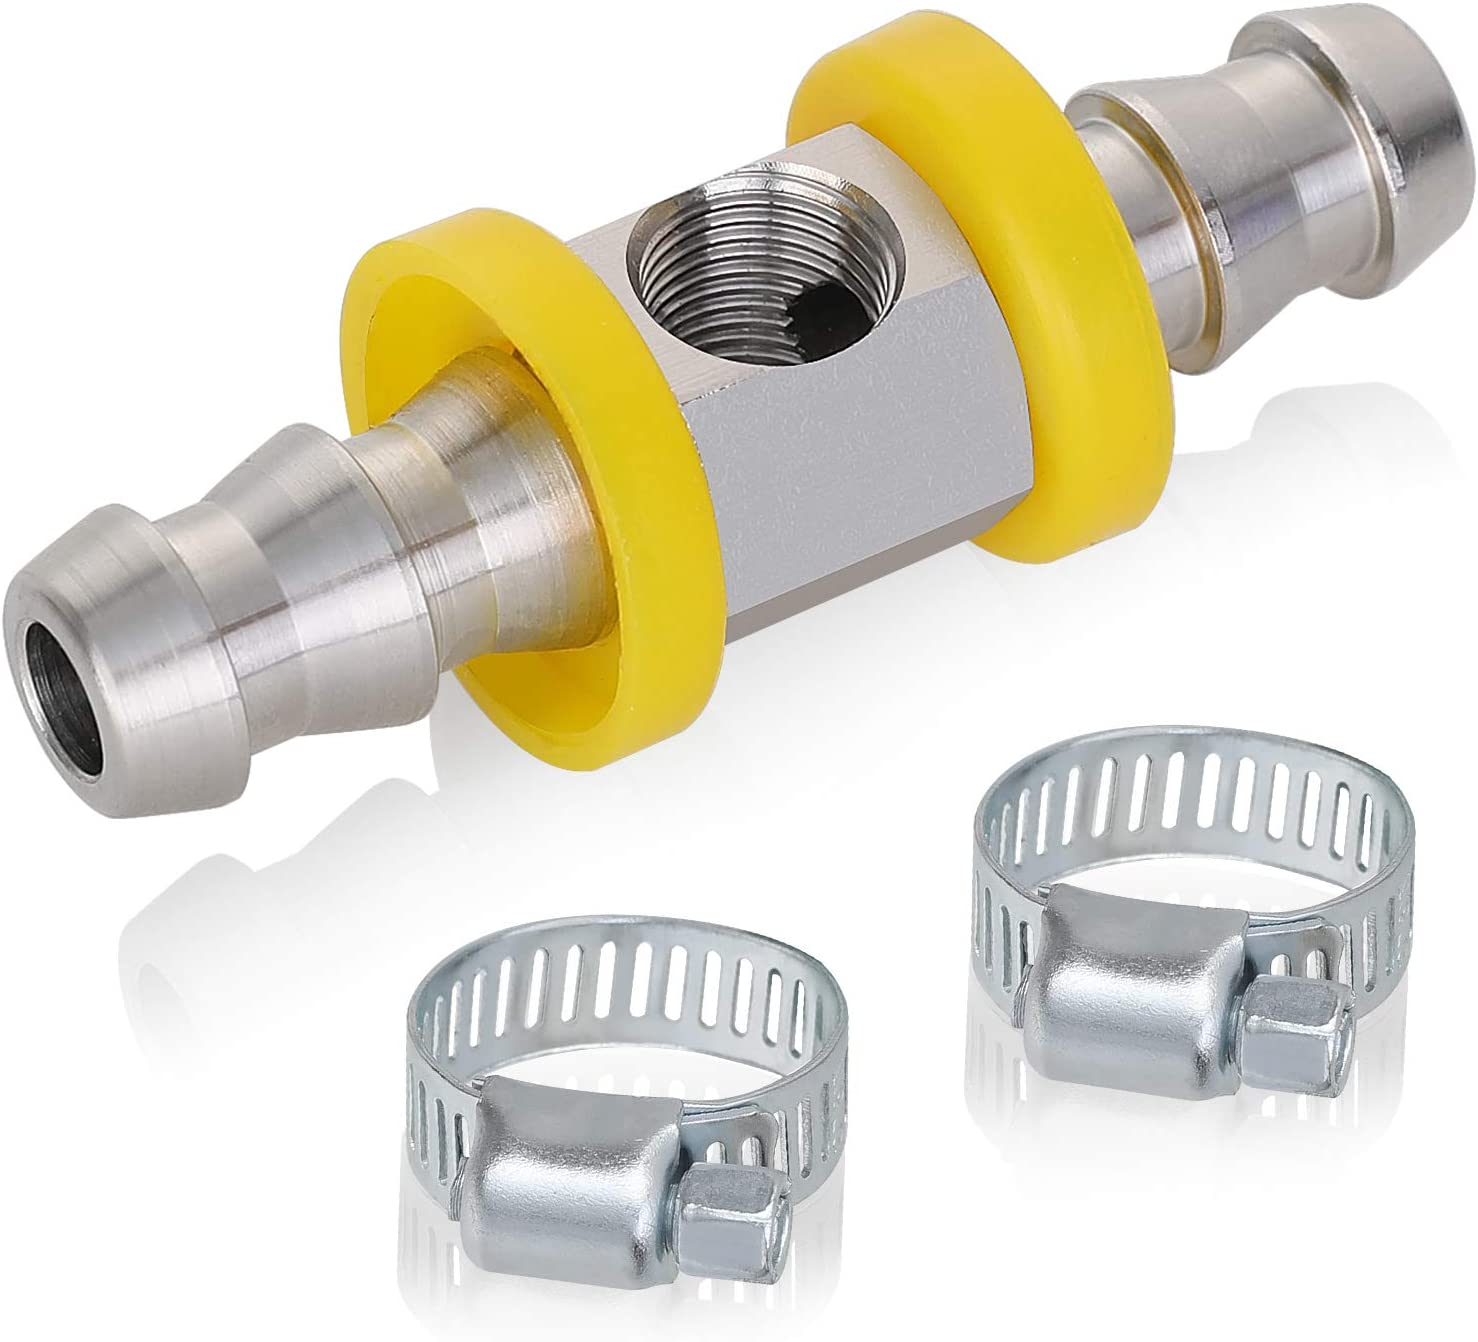 """Hromee 3 8"""" discount low-pricing Fuel Line Adapte Pressure T-Fitting Barbed"""